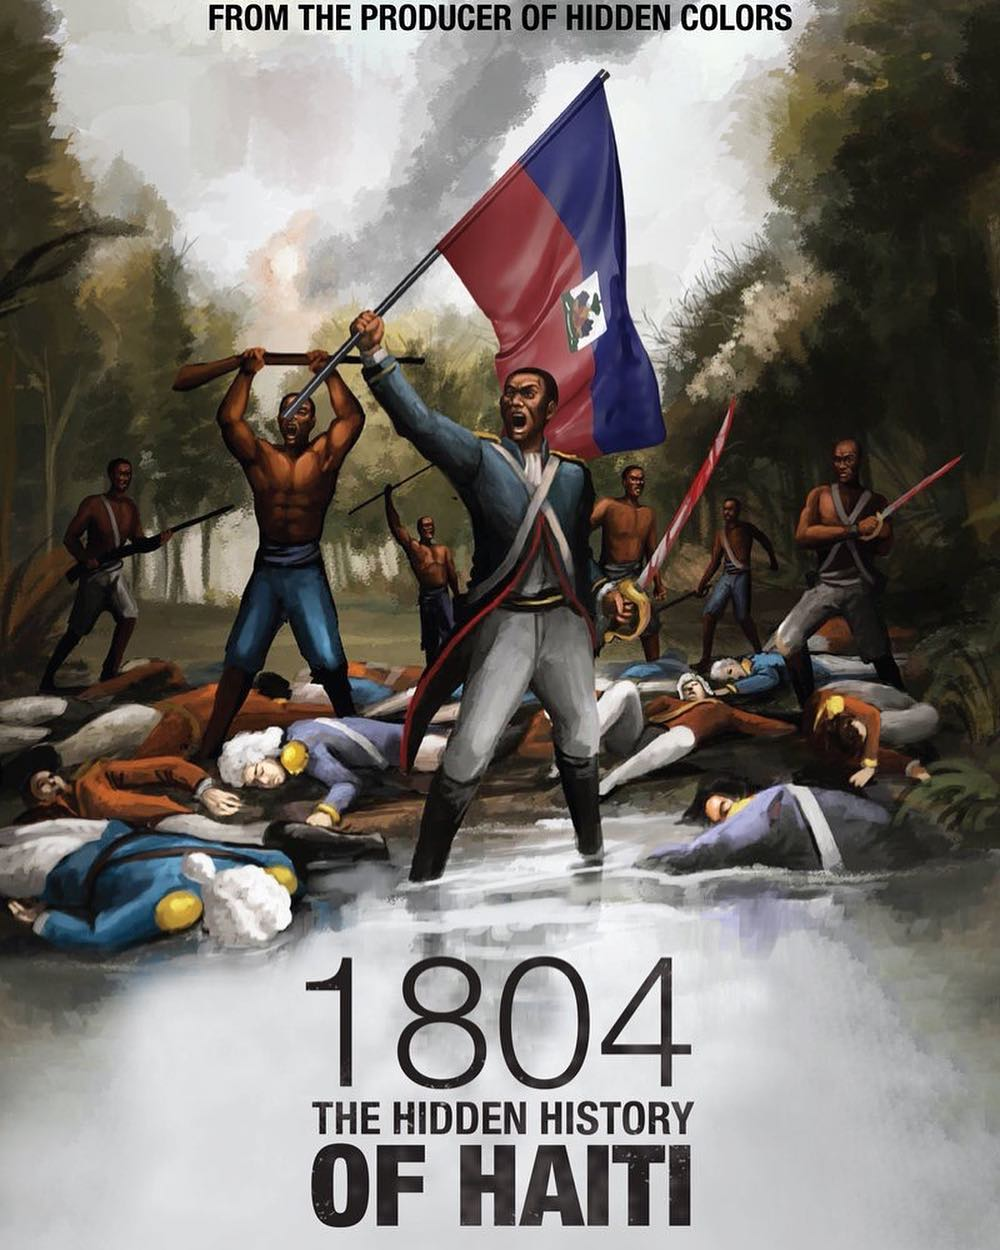 Let's support @tariqelite's new movie, 1804, a movie about haiti's independence! #haiti #hopeforhaiti #1804movie #followfriday